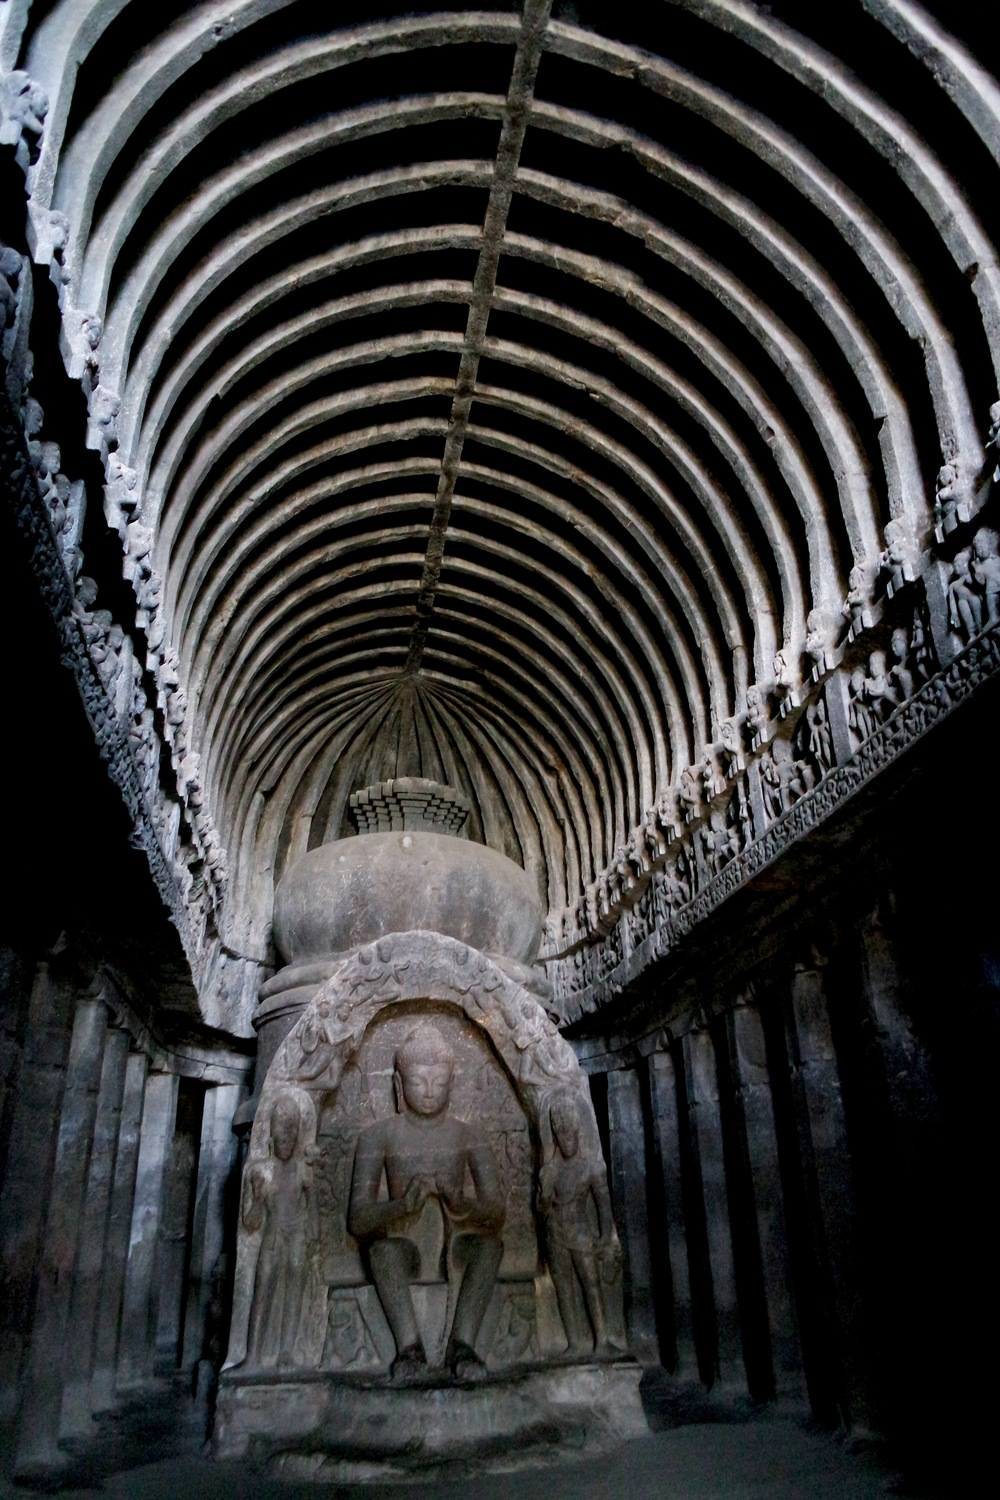 Cave 10, one of the Buddhist caves, is known for its rib-like roof